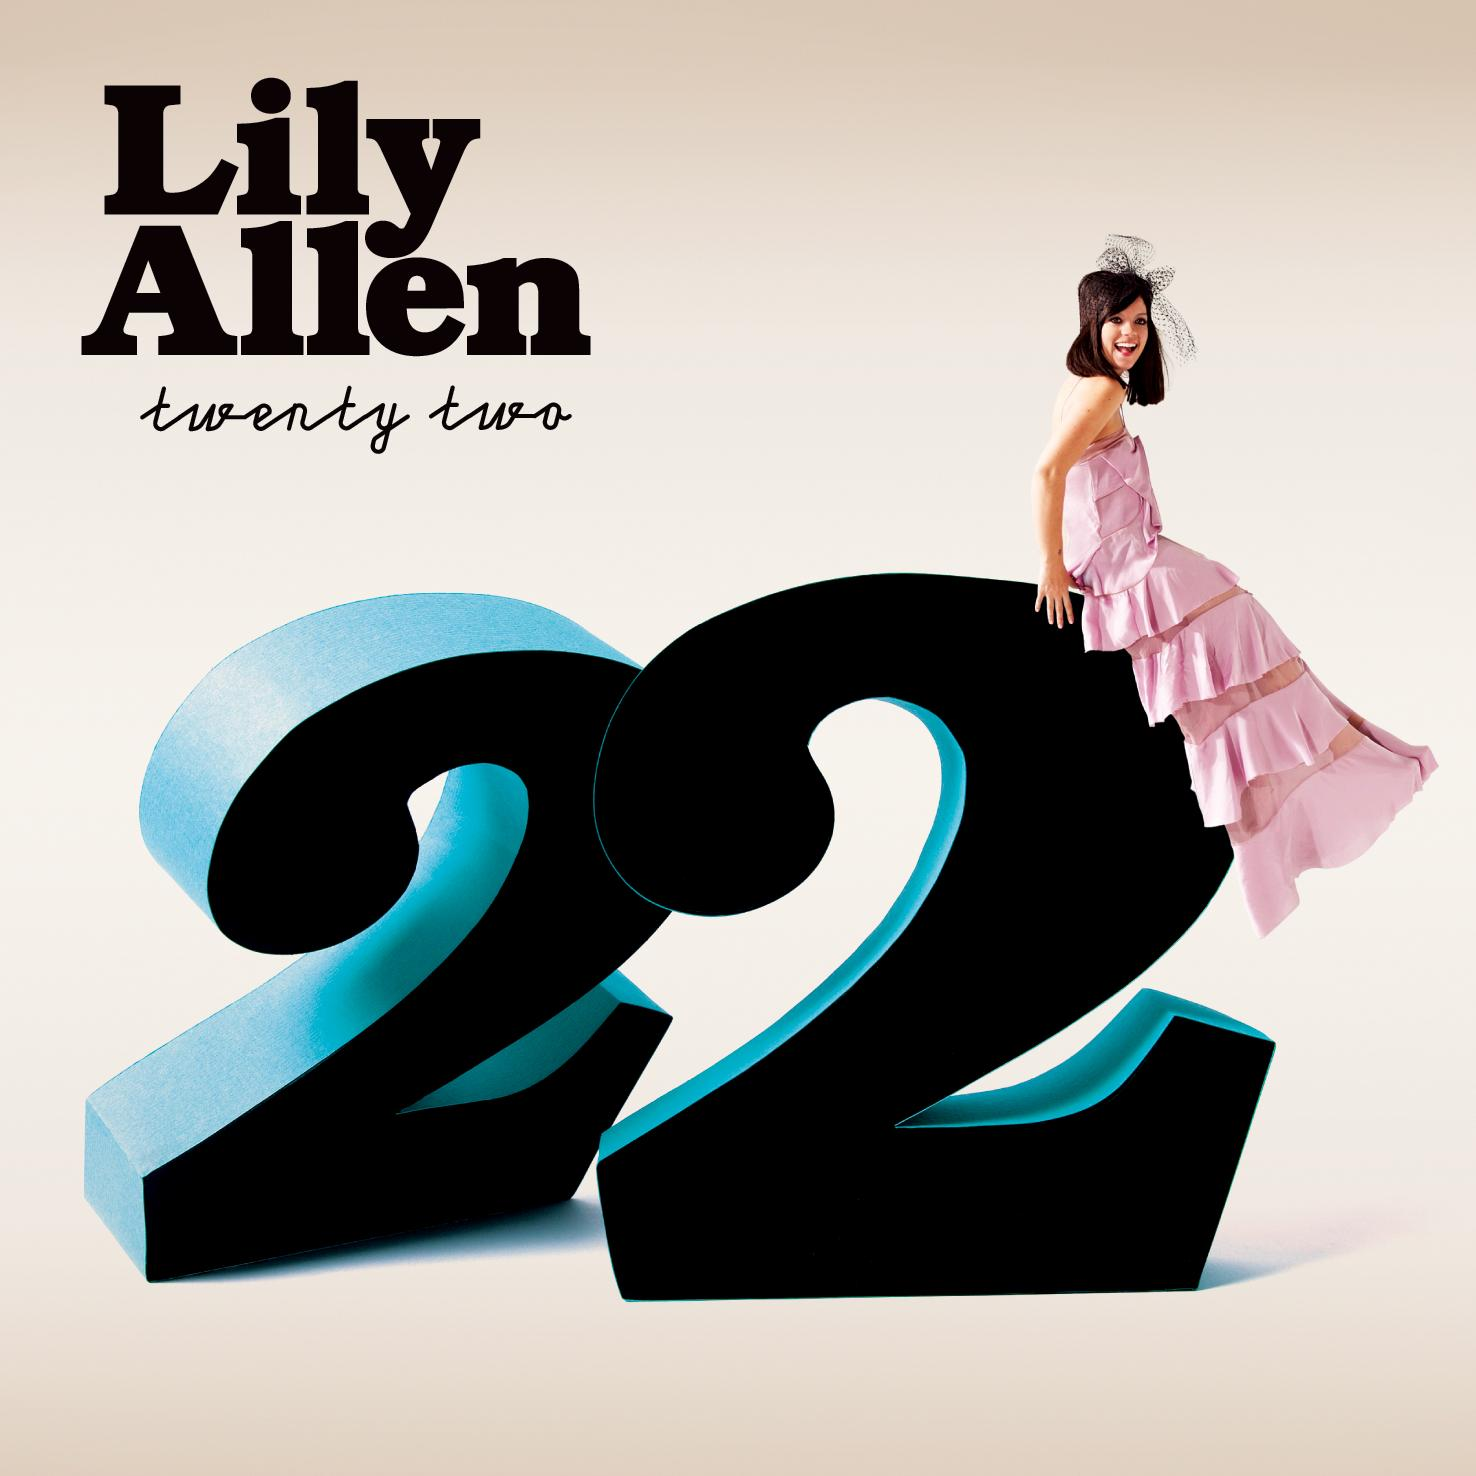 http://1.bp.blogspot.com/_7BL8-7BxuHg/SmHD92_enOI/AAAAAAAAA1s/pc2mtrUaa_A/s1600/Lily+Allen+-+22+%28Official+Single+Cover%29.jpg